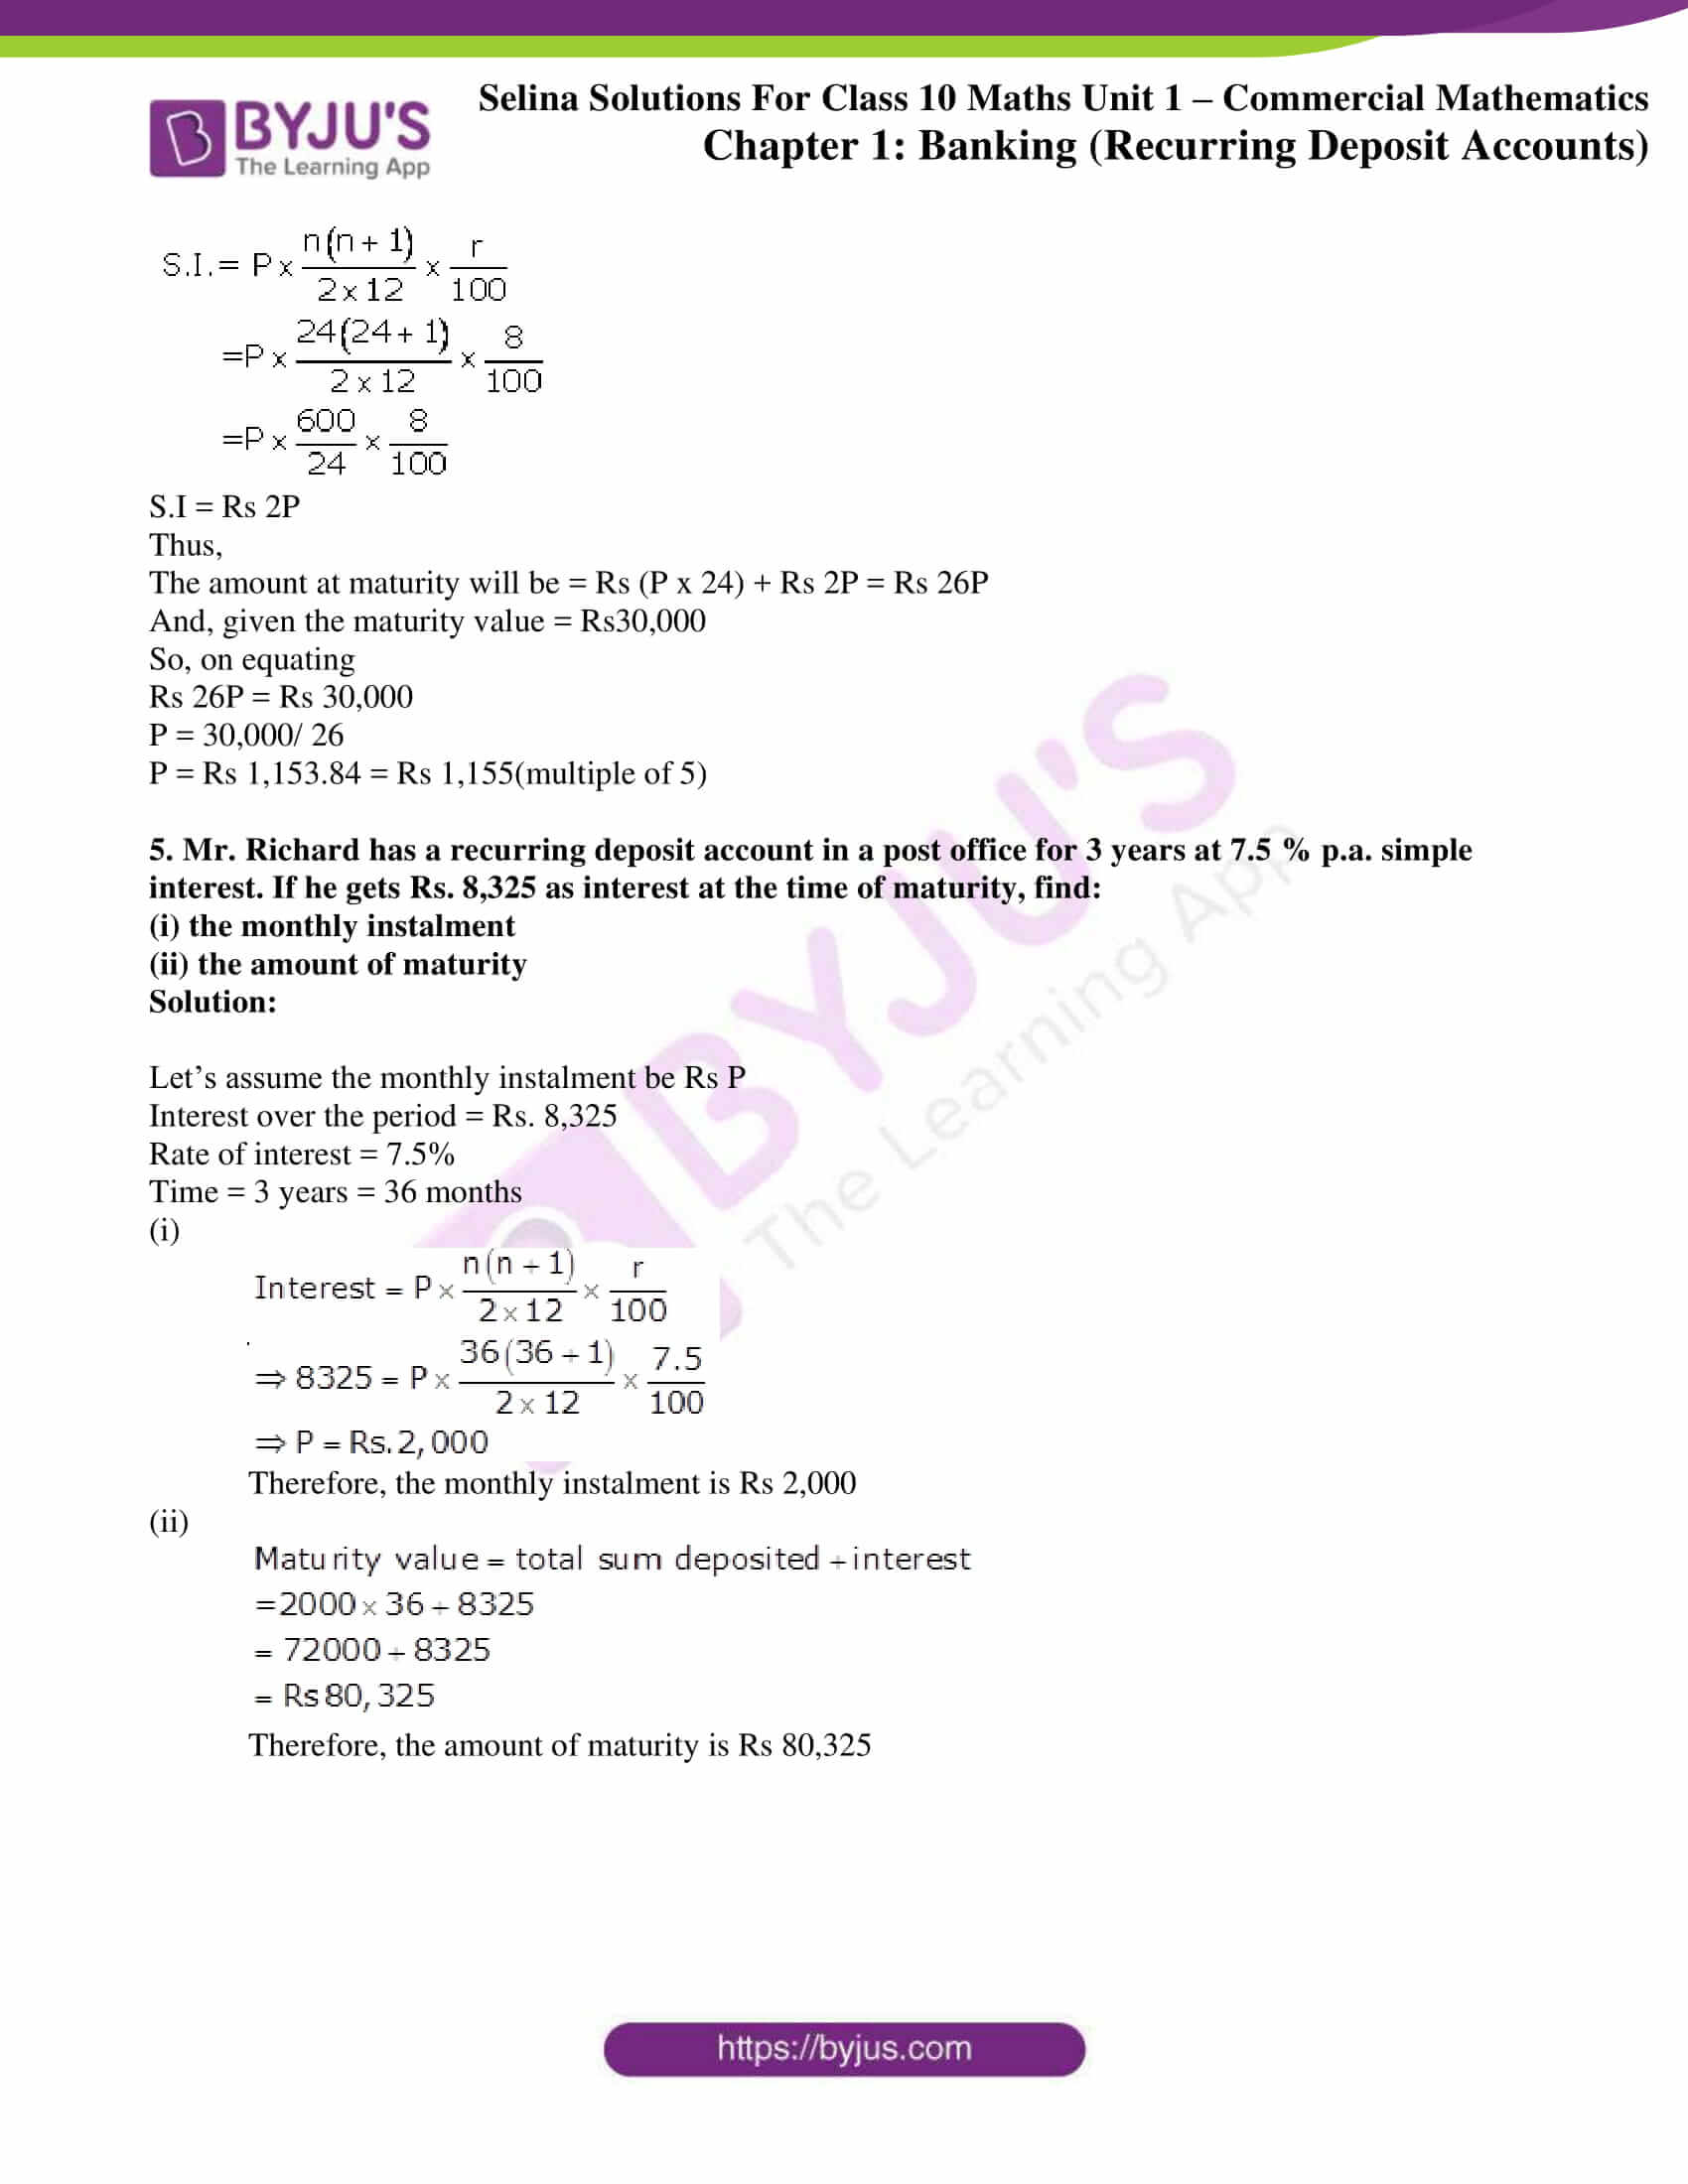 selina solution concise maths class 10 chapter 2